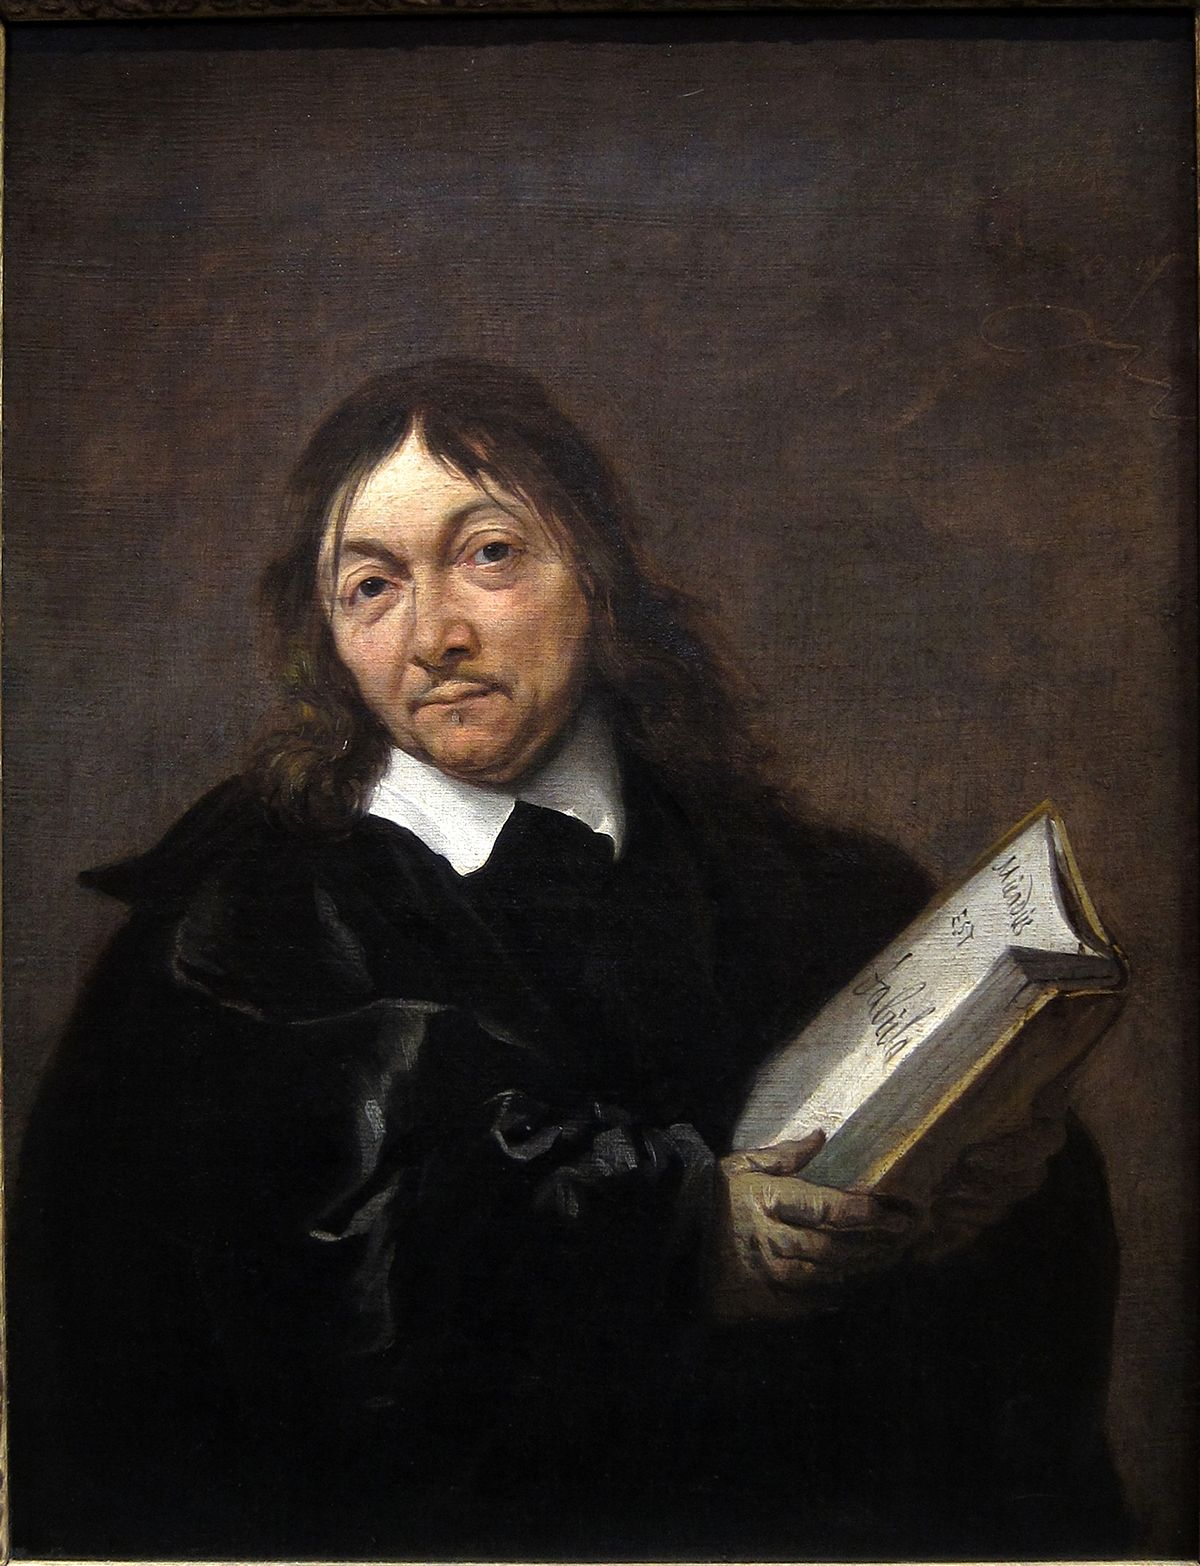 descartes meditation iii View essay - descartes-meditations, i-ii from phil 100 at waterloo phil 100j : introduction to philosophy prof: b tremblay (stjeromes) ren descartes (1596-1650) meditations, i-ii (trans john.